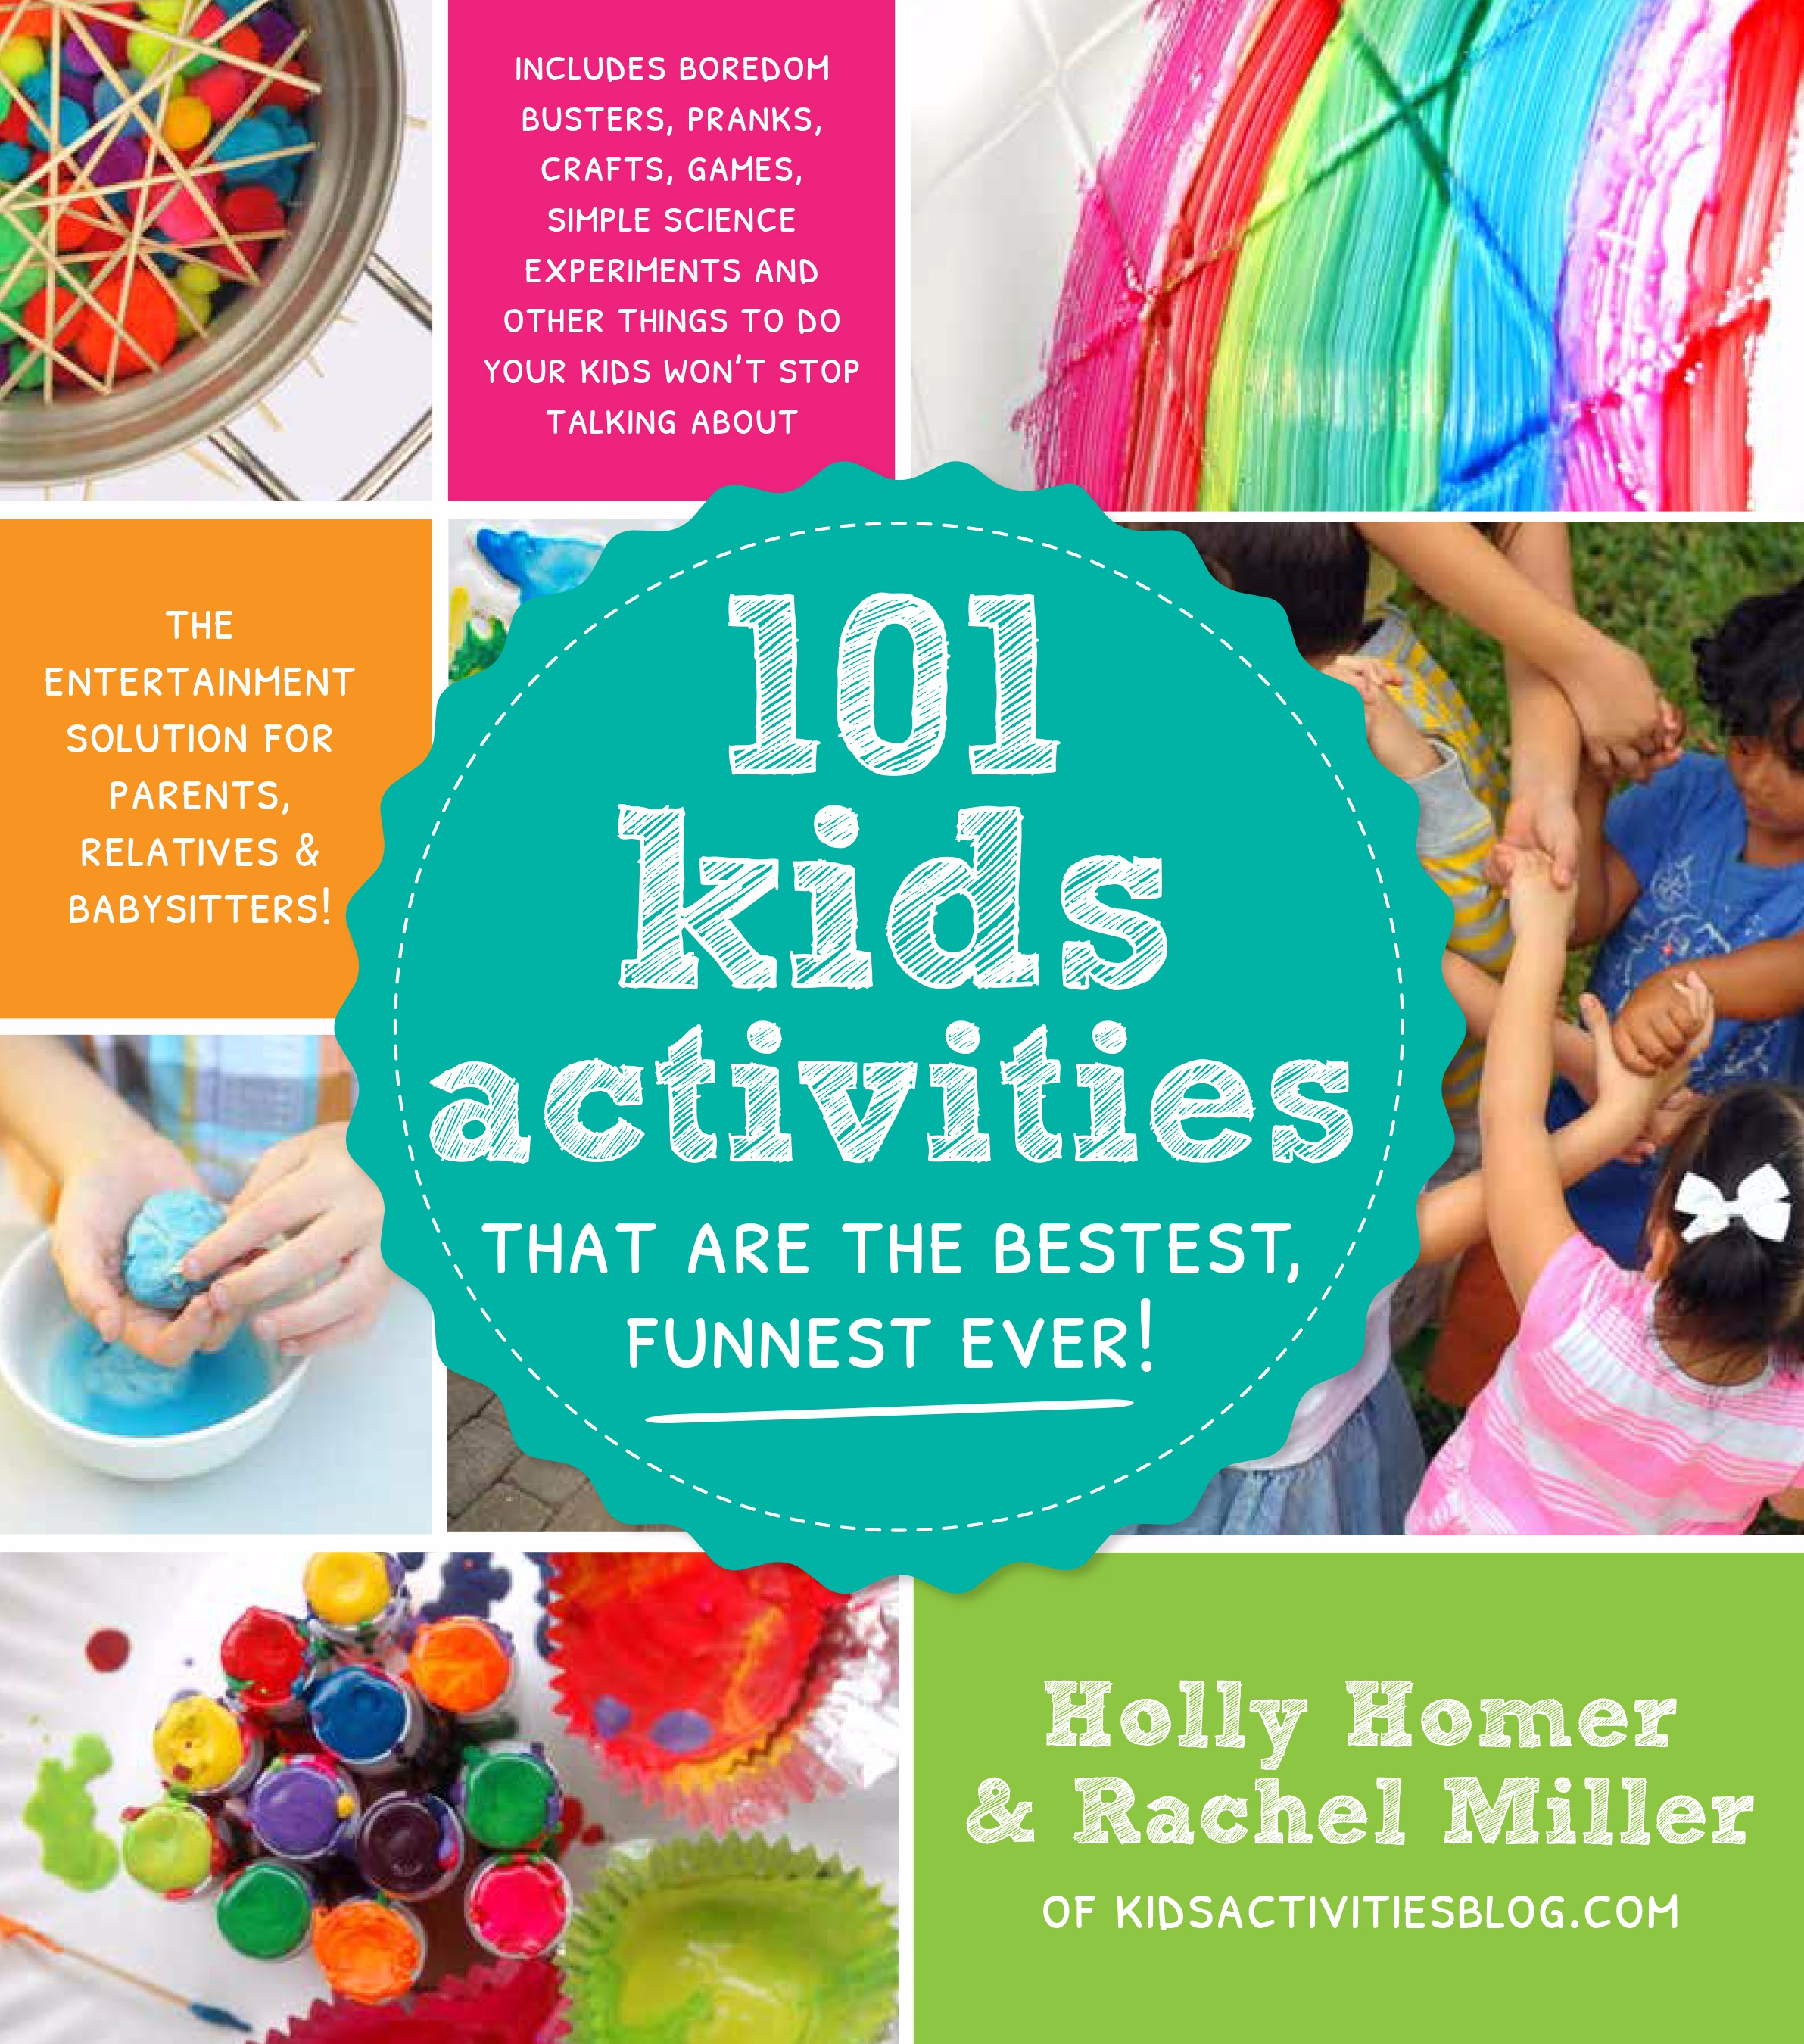 About Holly Homer & Kids Activities